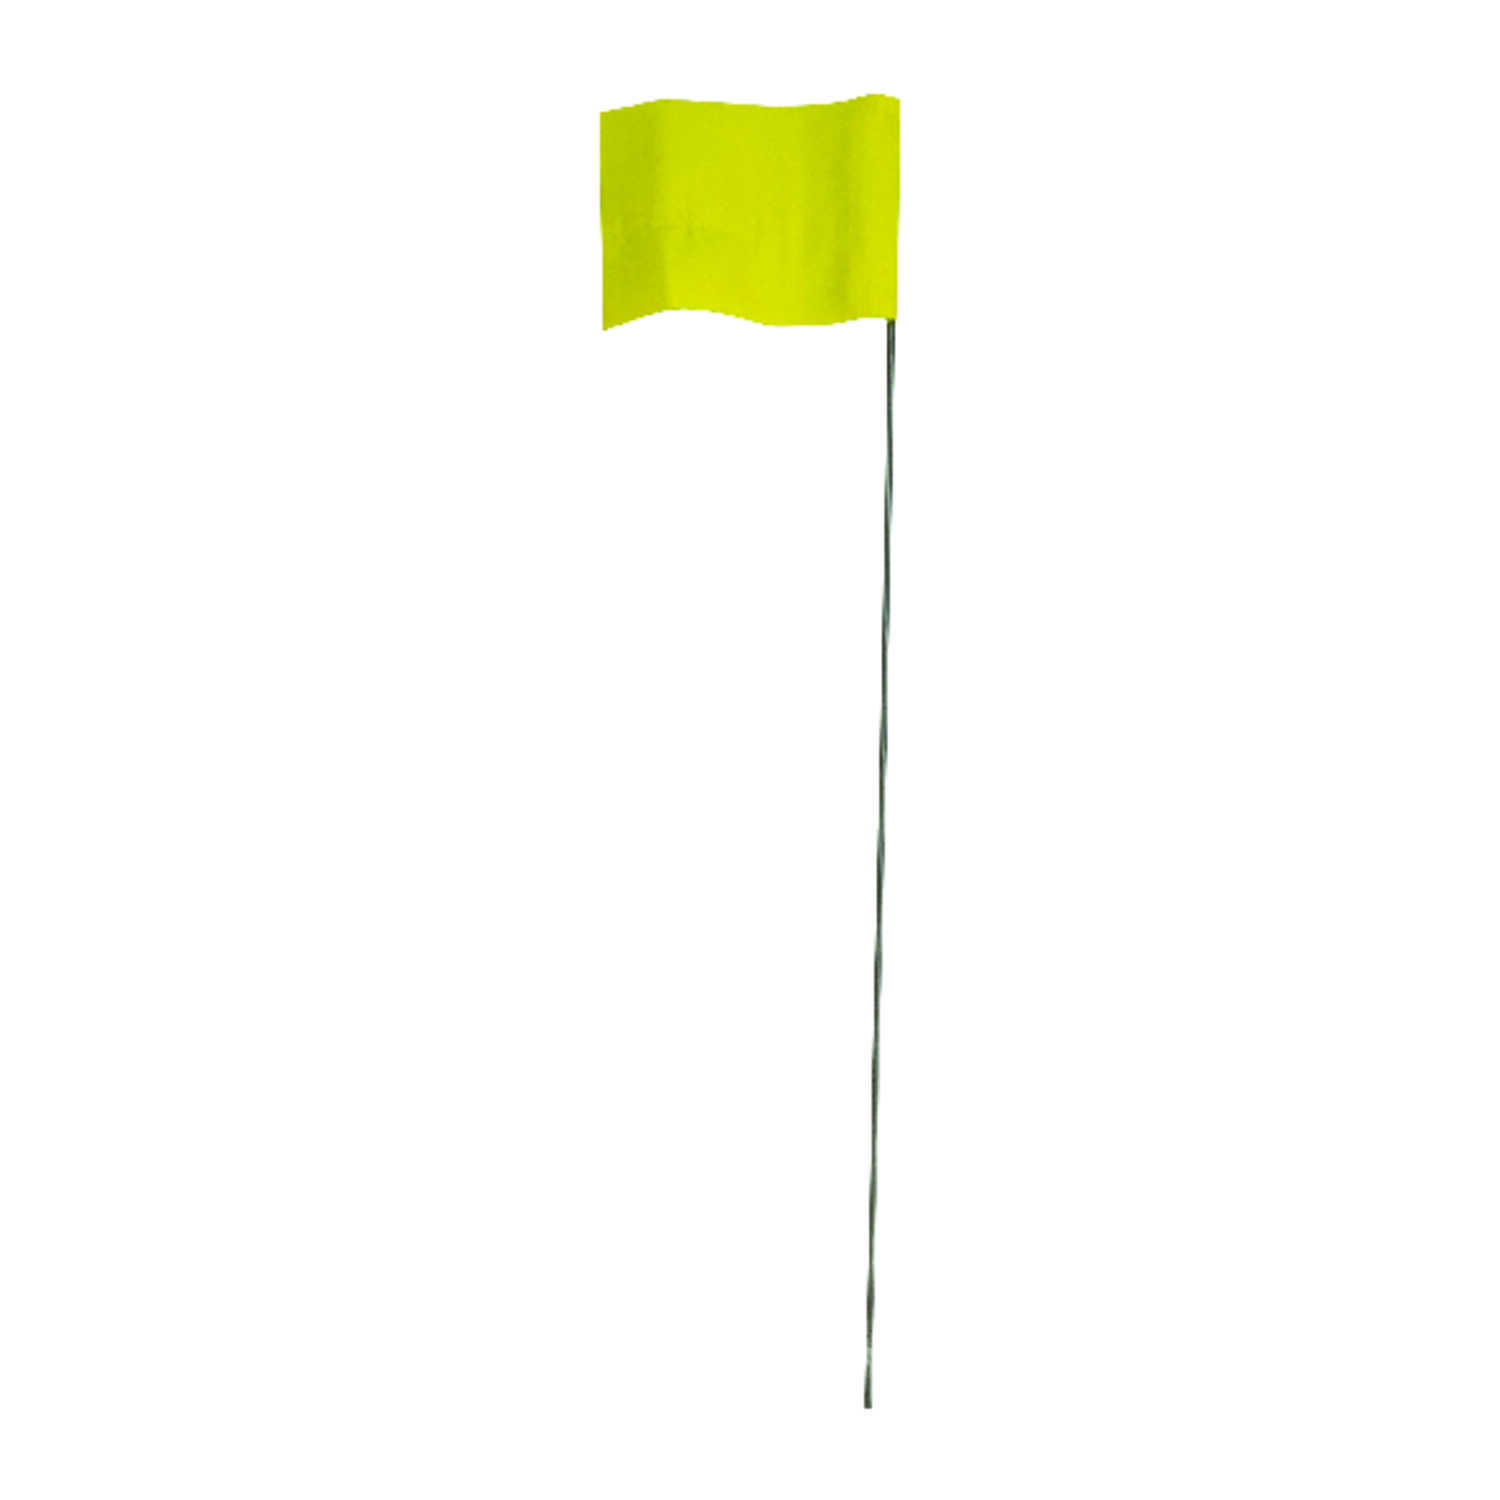 C.H. Hanson  Yellow  Marking Flags  Polyvinyl  15 in. 100